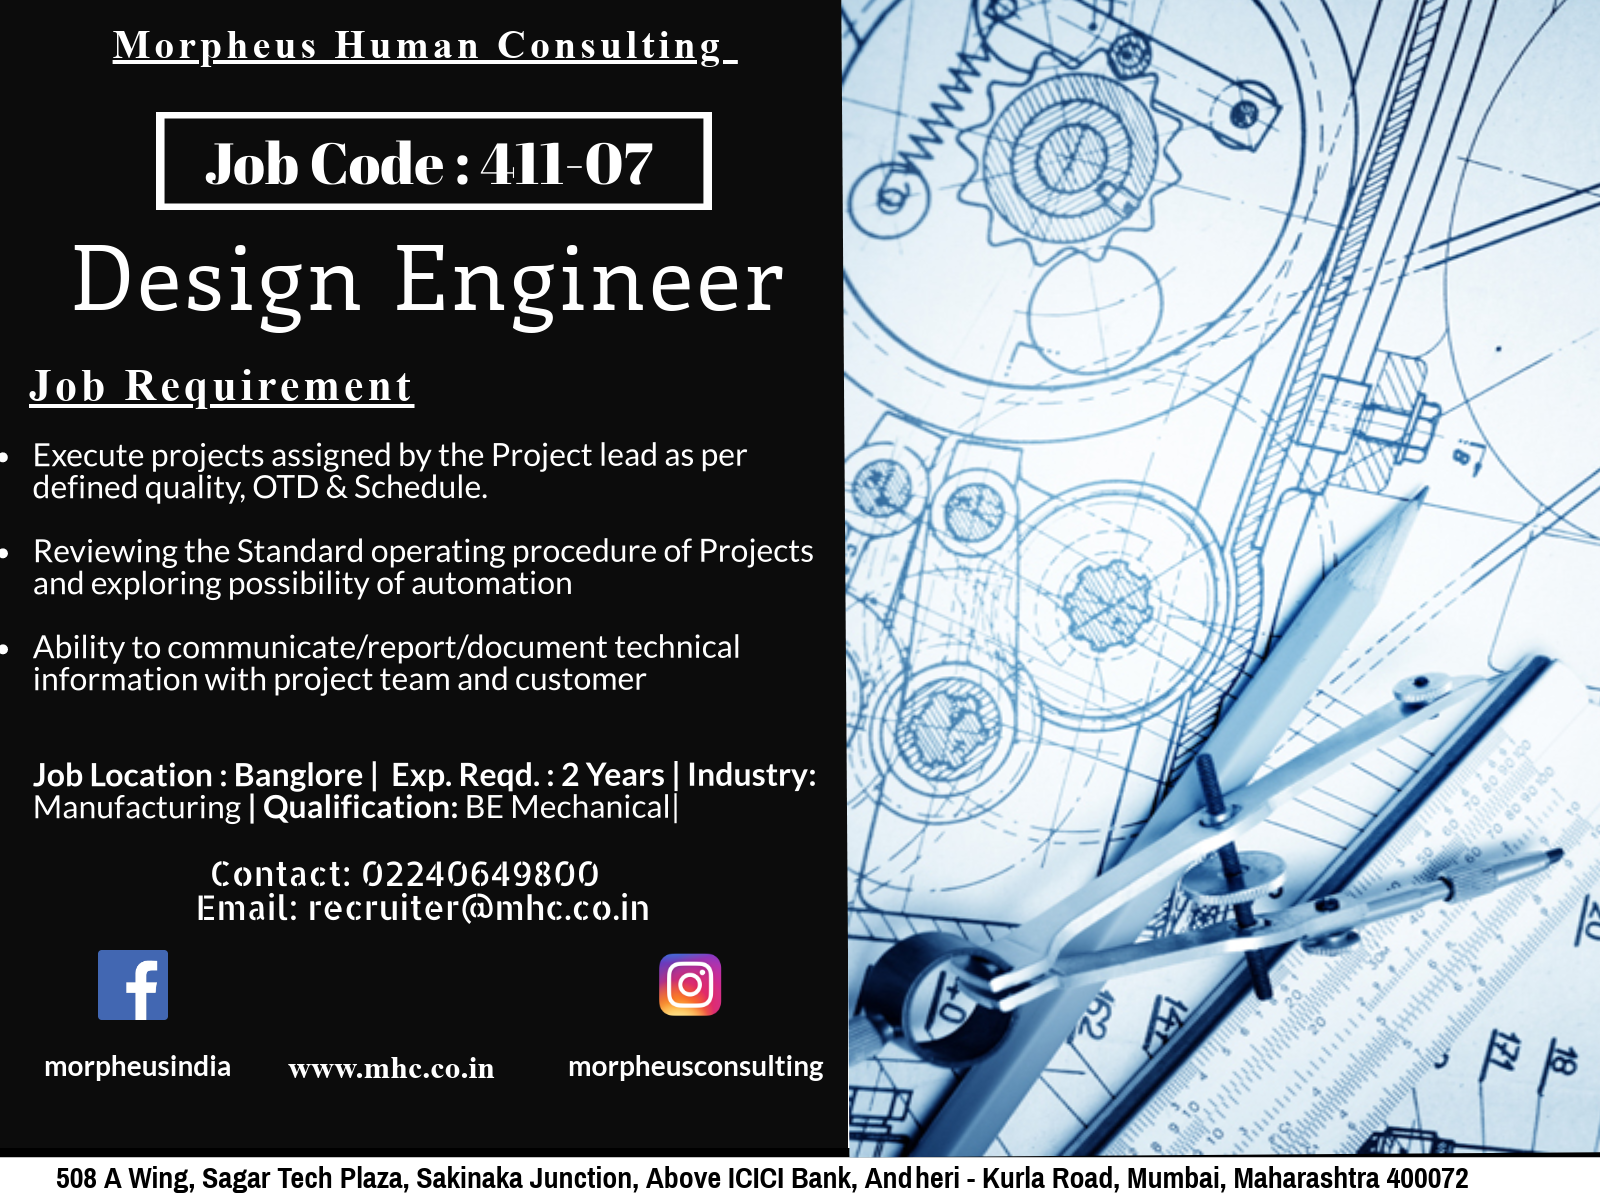 We Are Looking For A Design Engineer In Bangalore For A Leading Manufacturing Company The Ideal Candidate Should Be Engineering Design Job Posting Job Opening